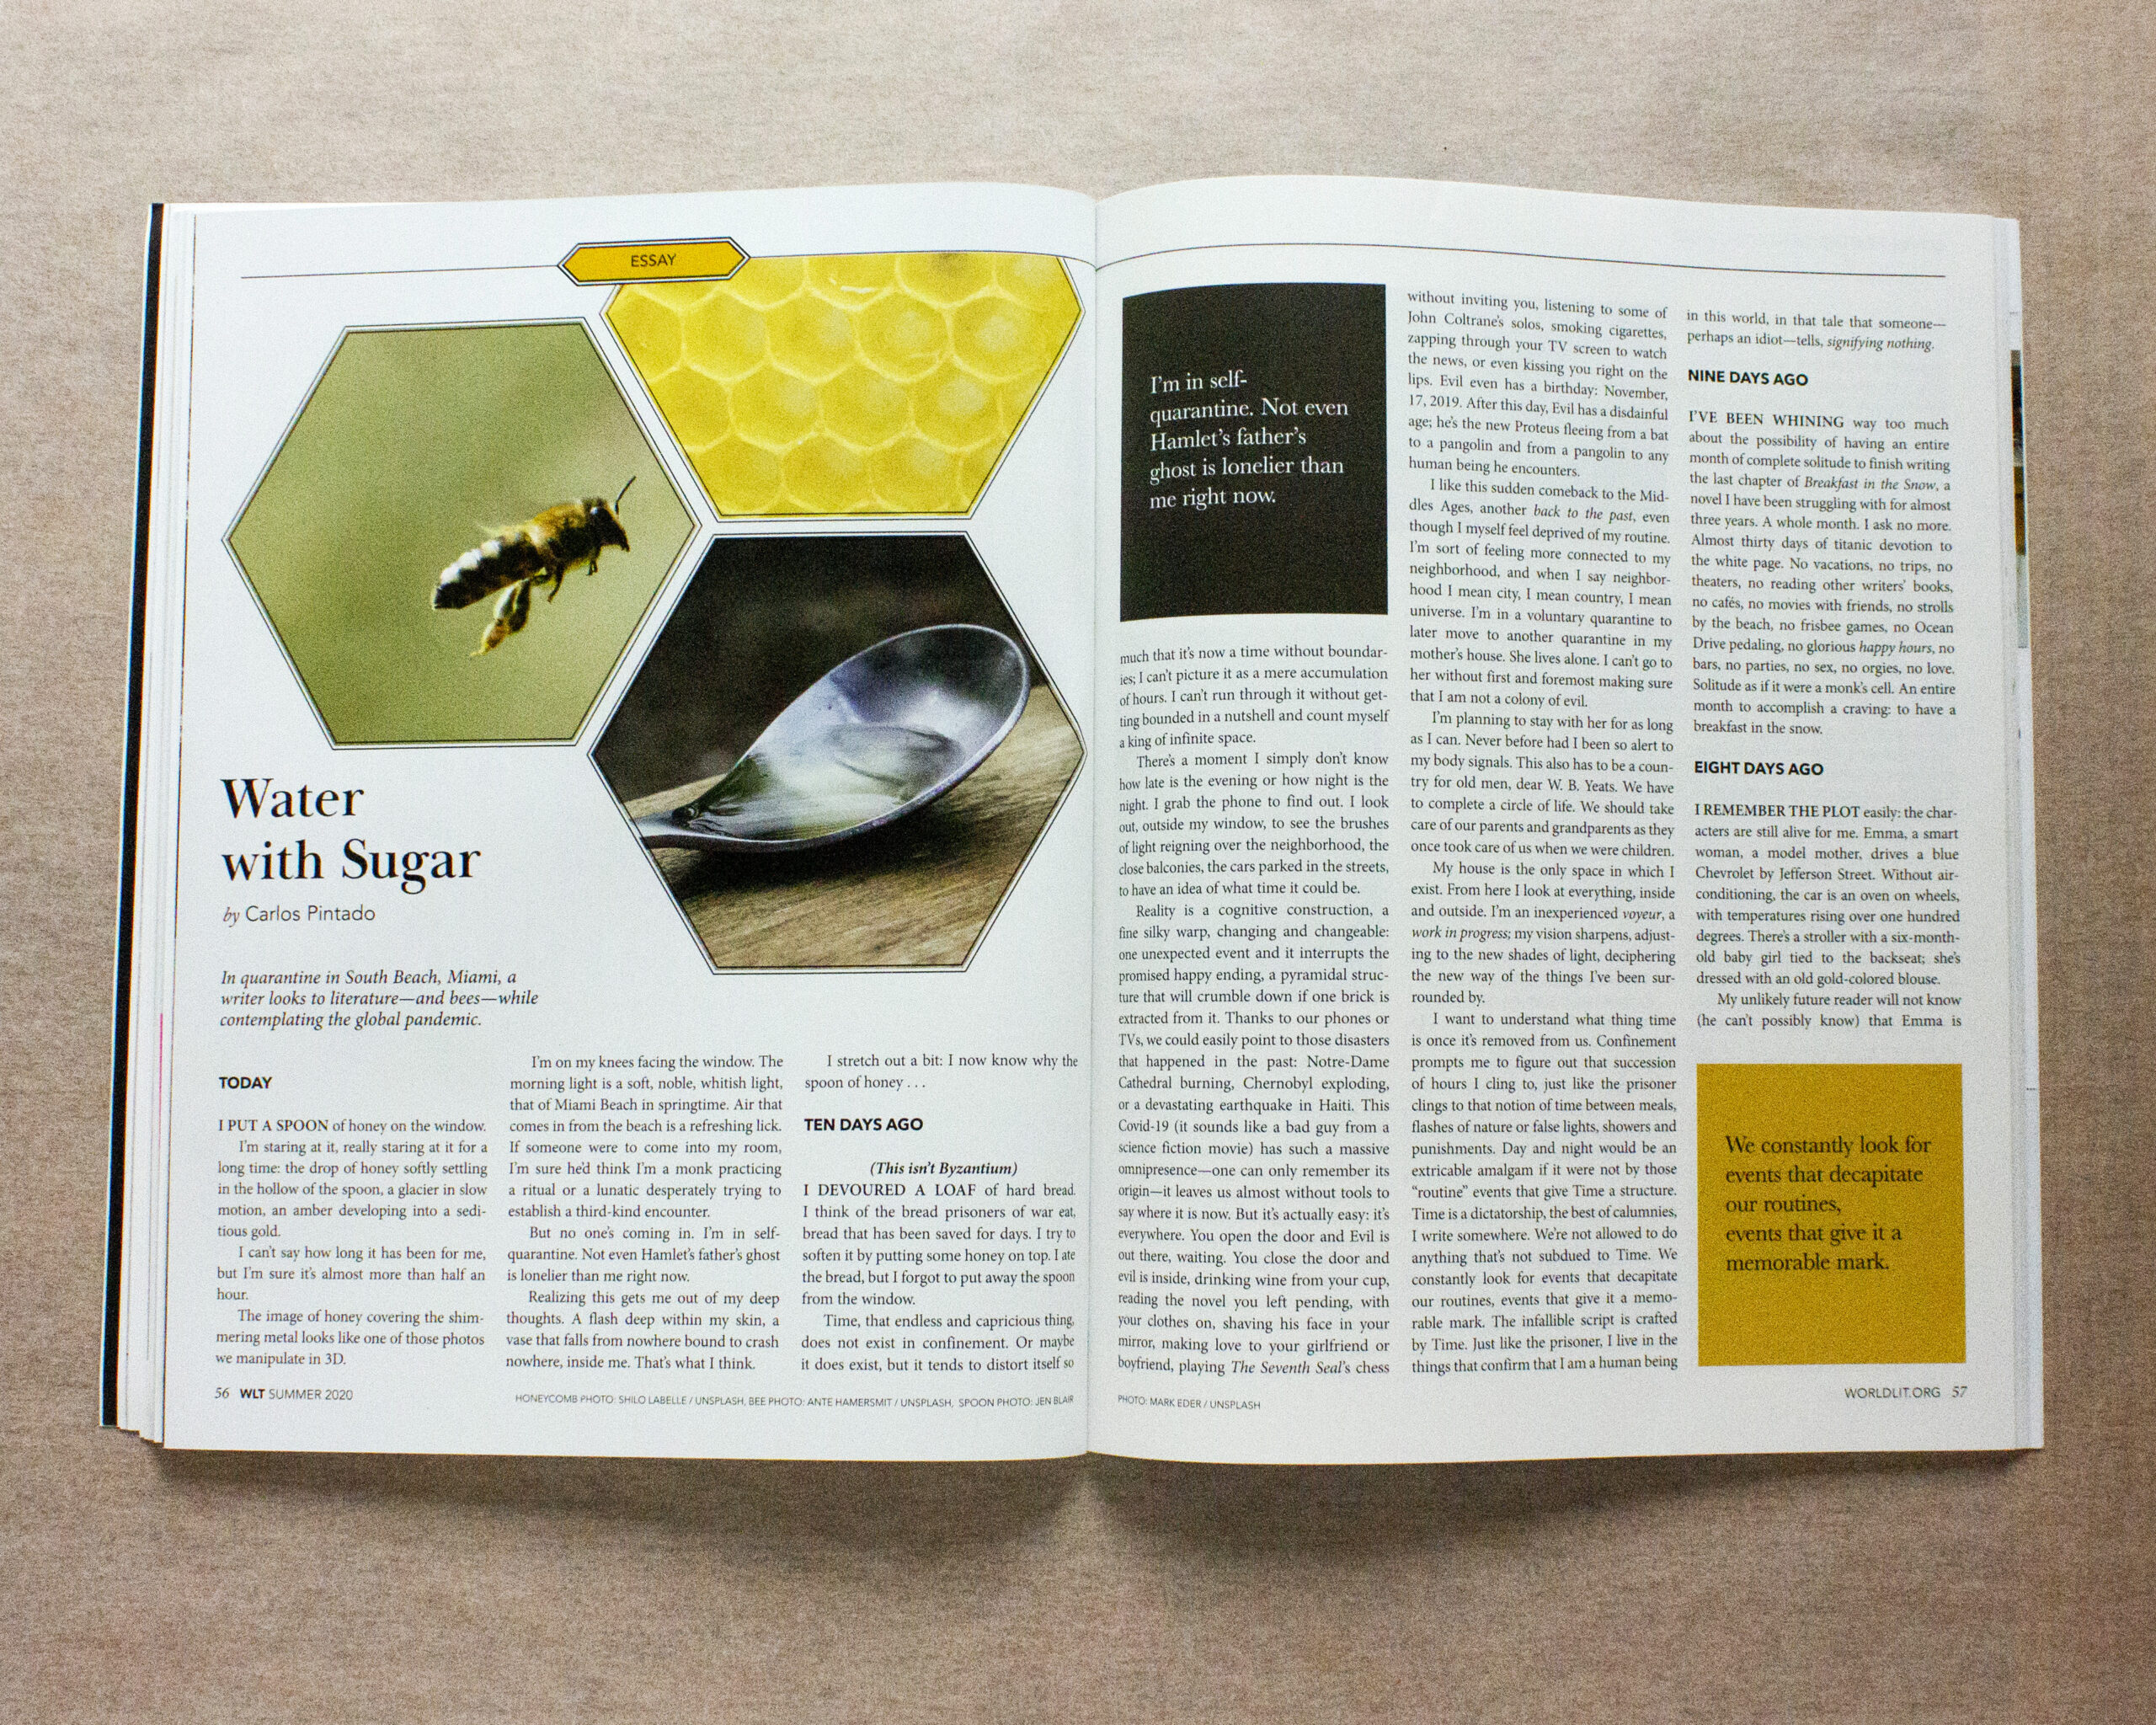 The honeycombs in the design reference the bees and feelings of fragmentation during the pandemic.